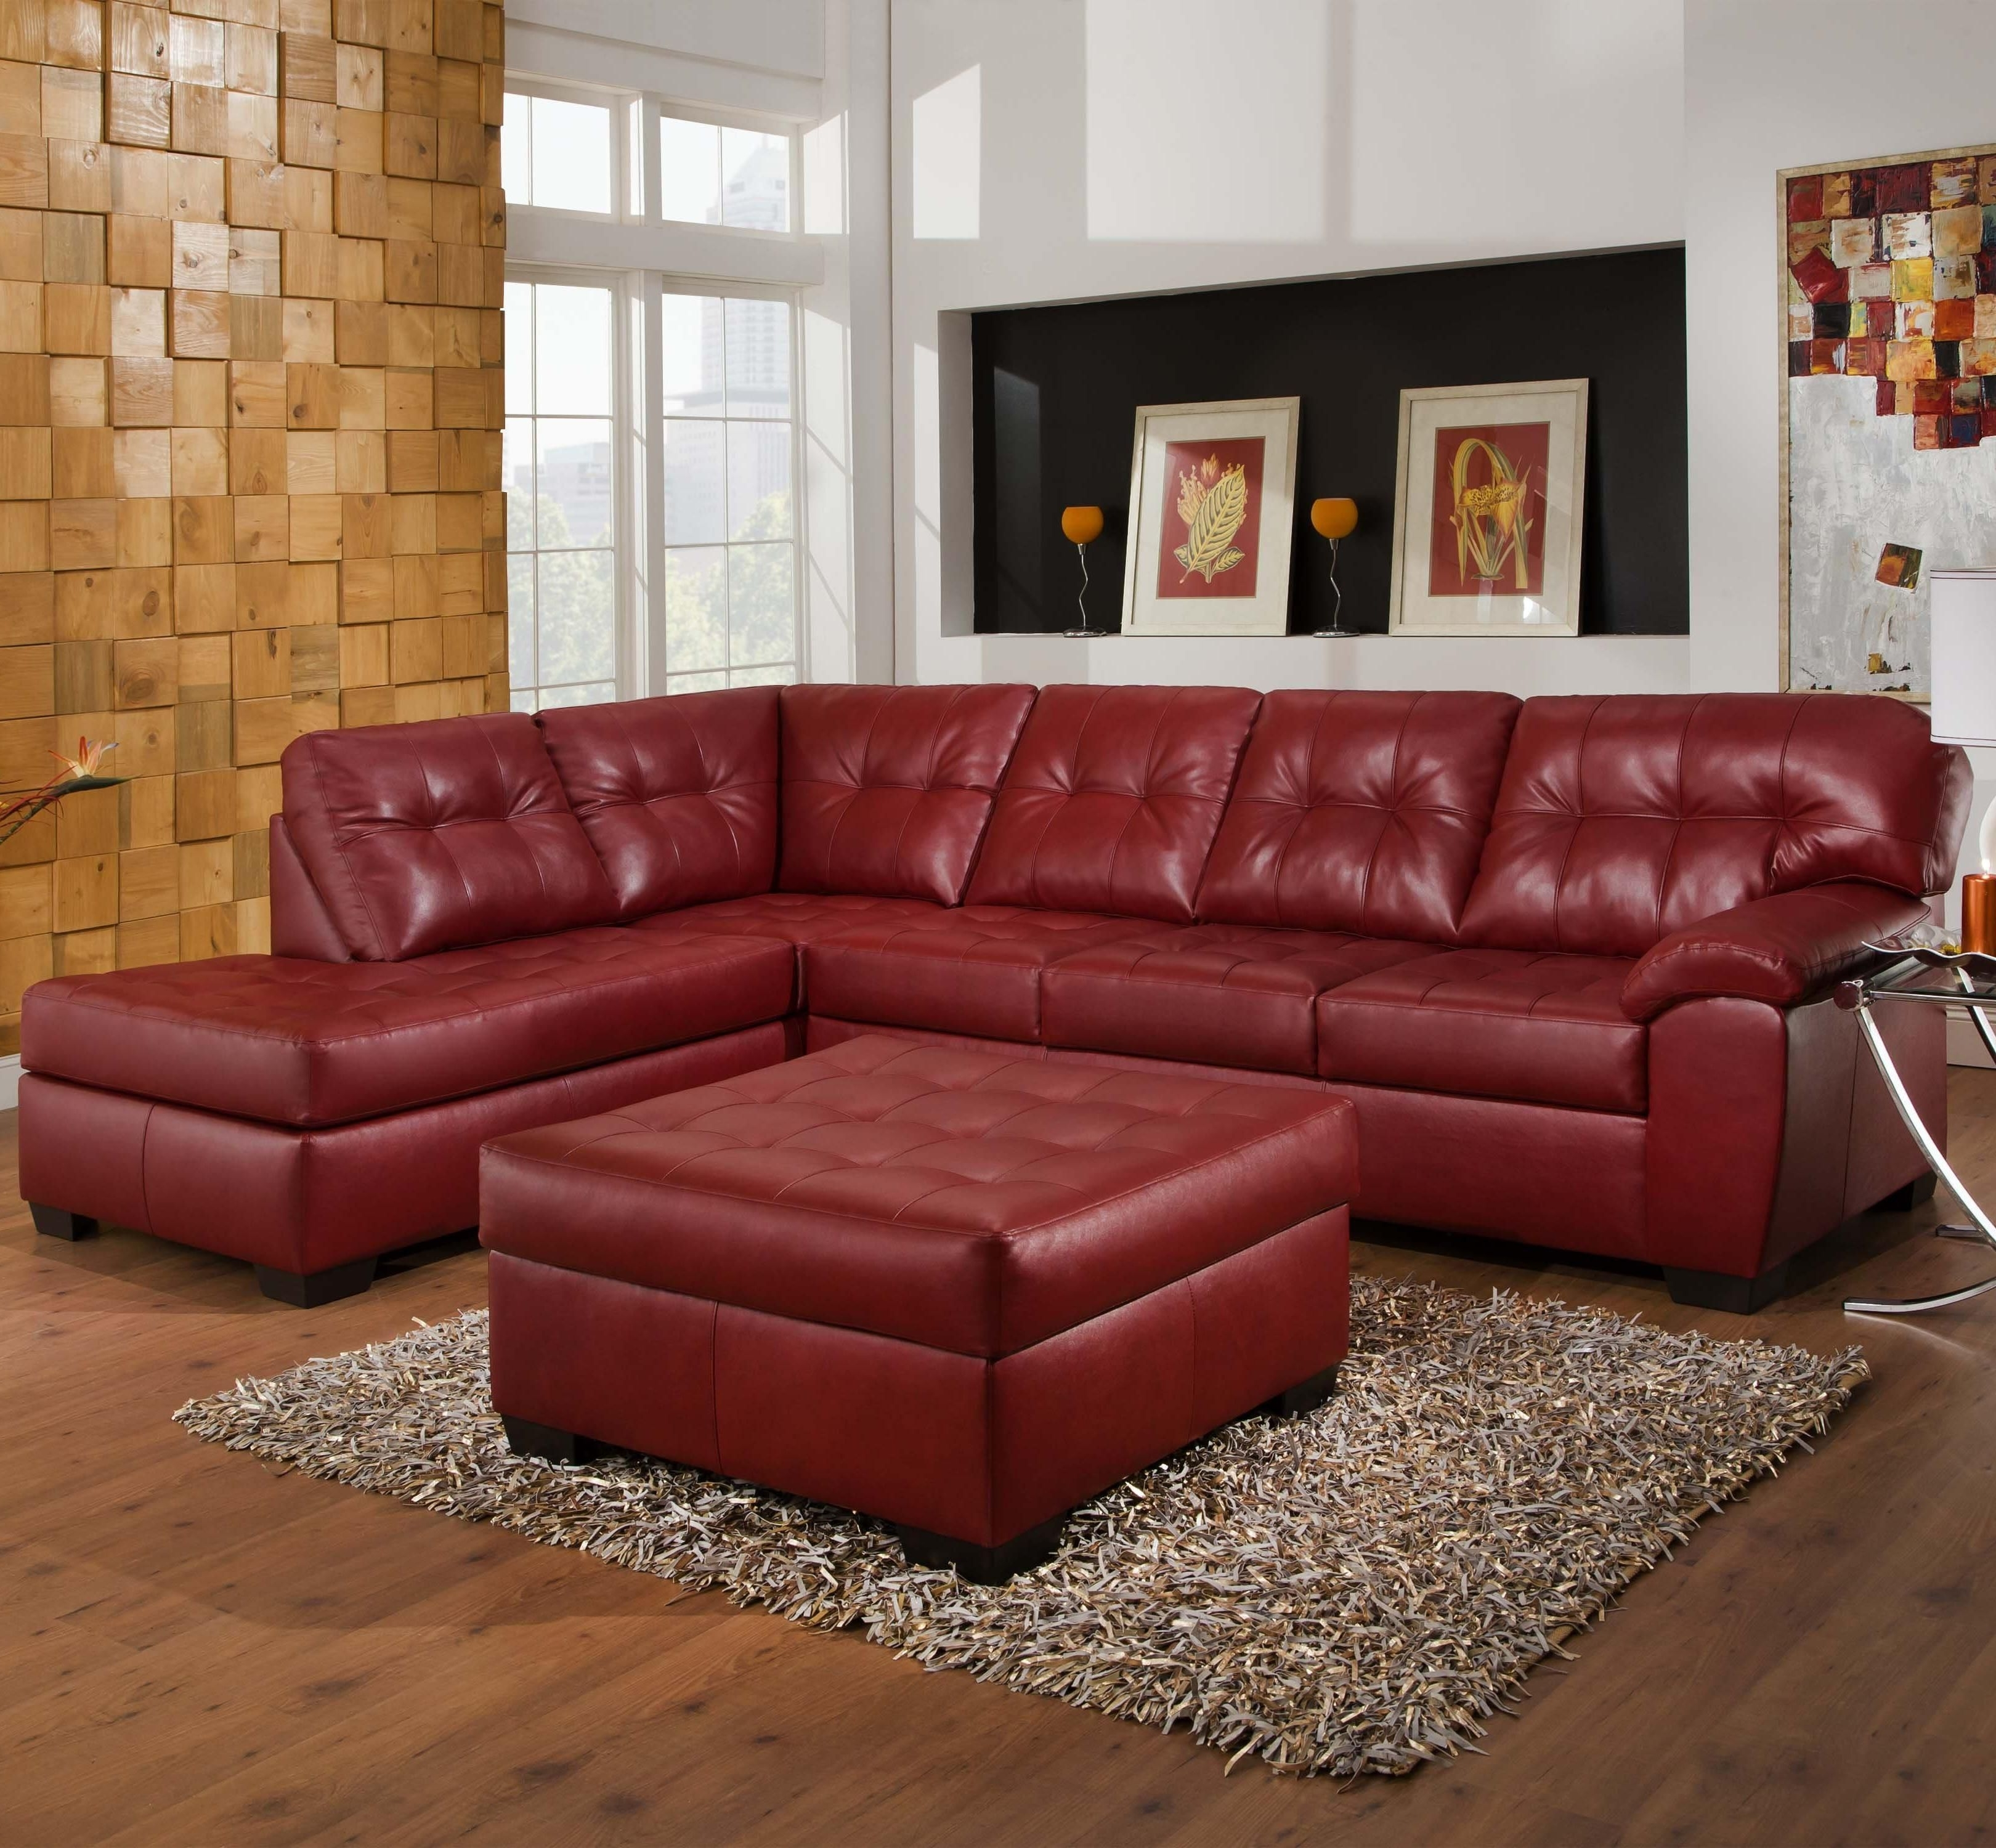 Current Jackson Ms Sectional Sofas With 9569 2 Piece Sectional With Tufted Seats & Backsimmons (View 15 of 20)